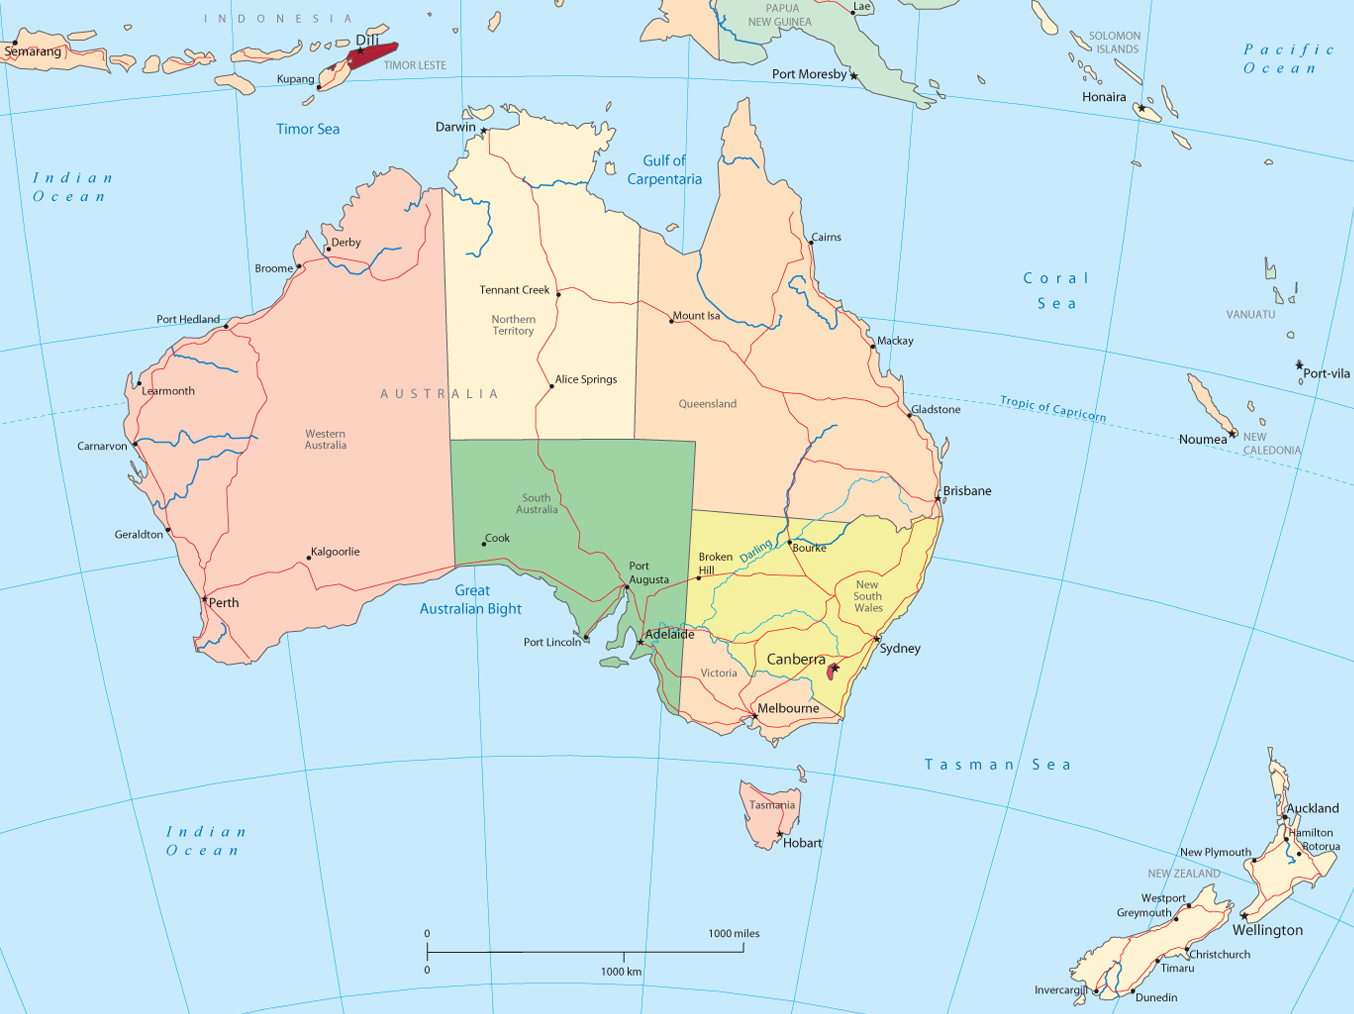 Australia and New Zealand - Political Map